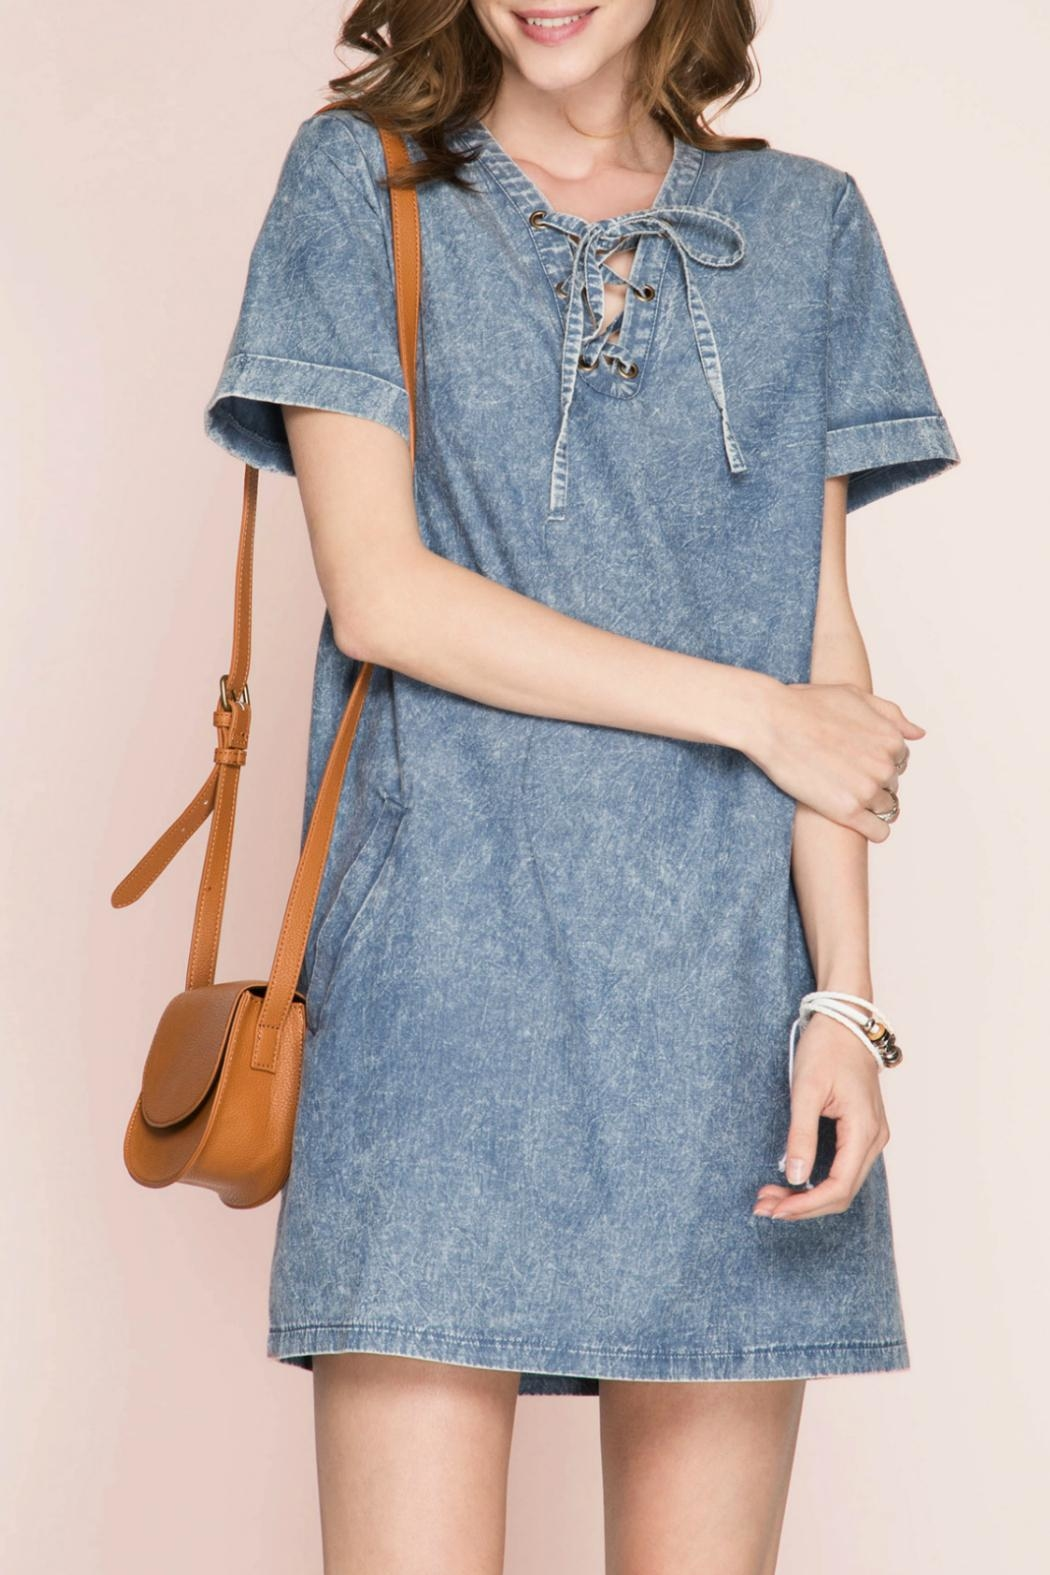 She + Sky Lace Up Denim Dress - Main Image